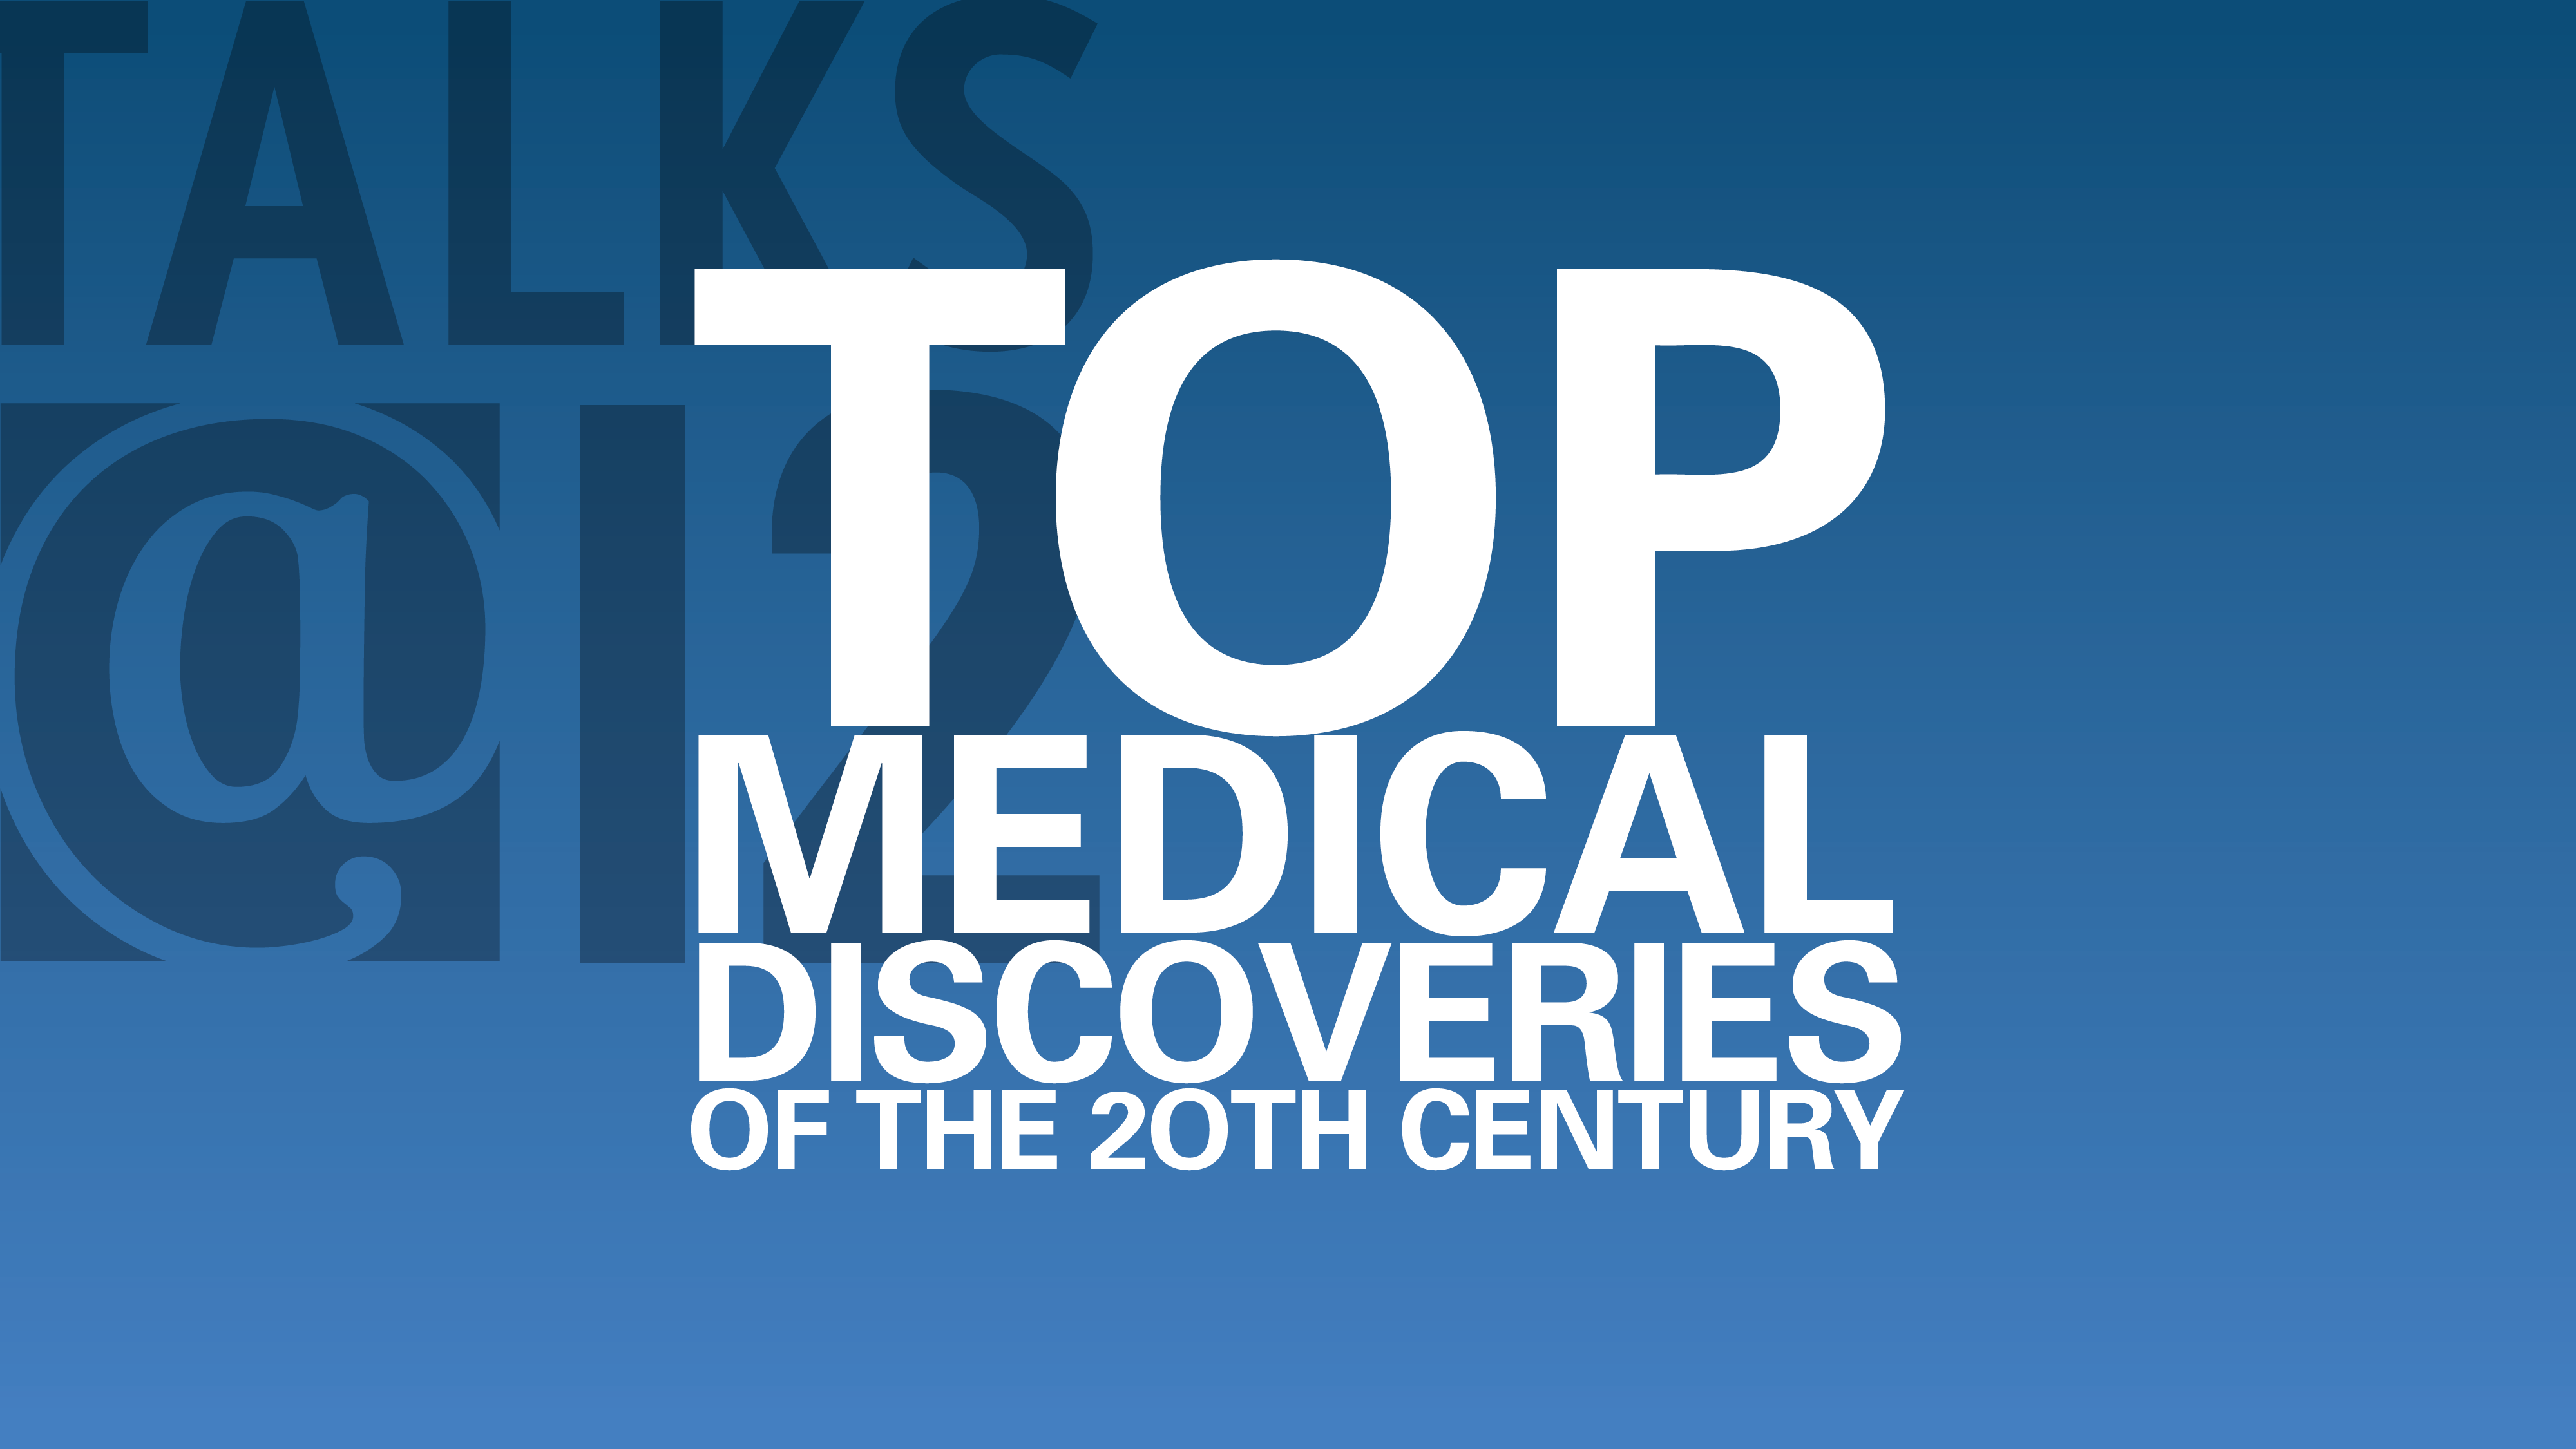 Top Medical Discoveries of the 20th Century